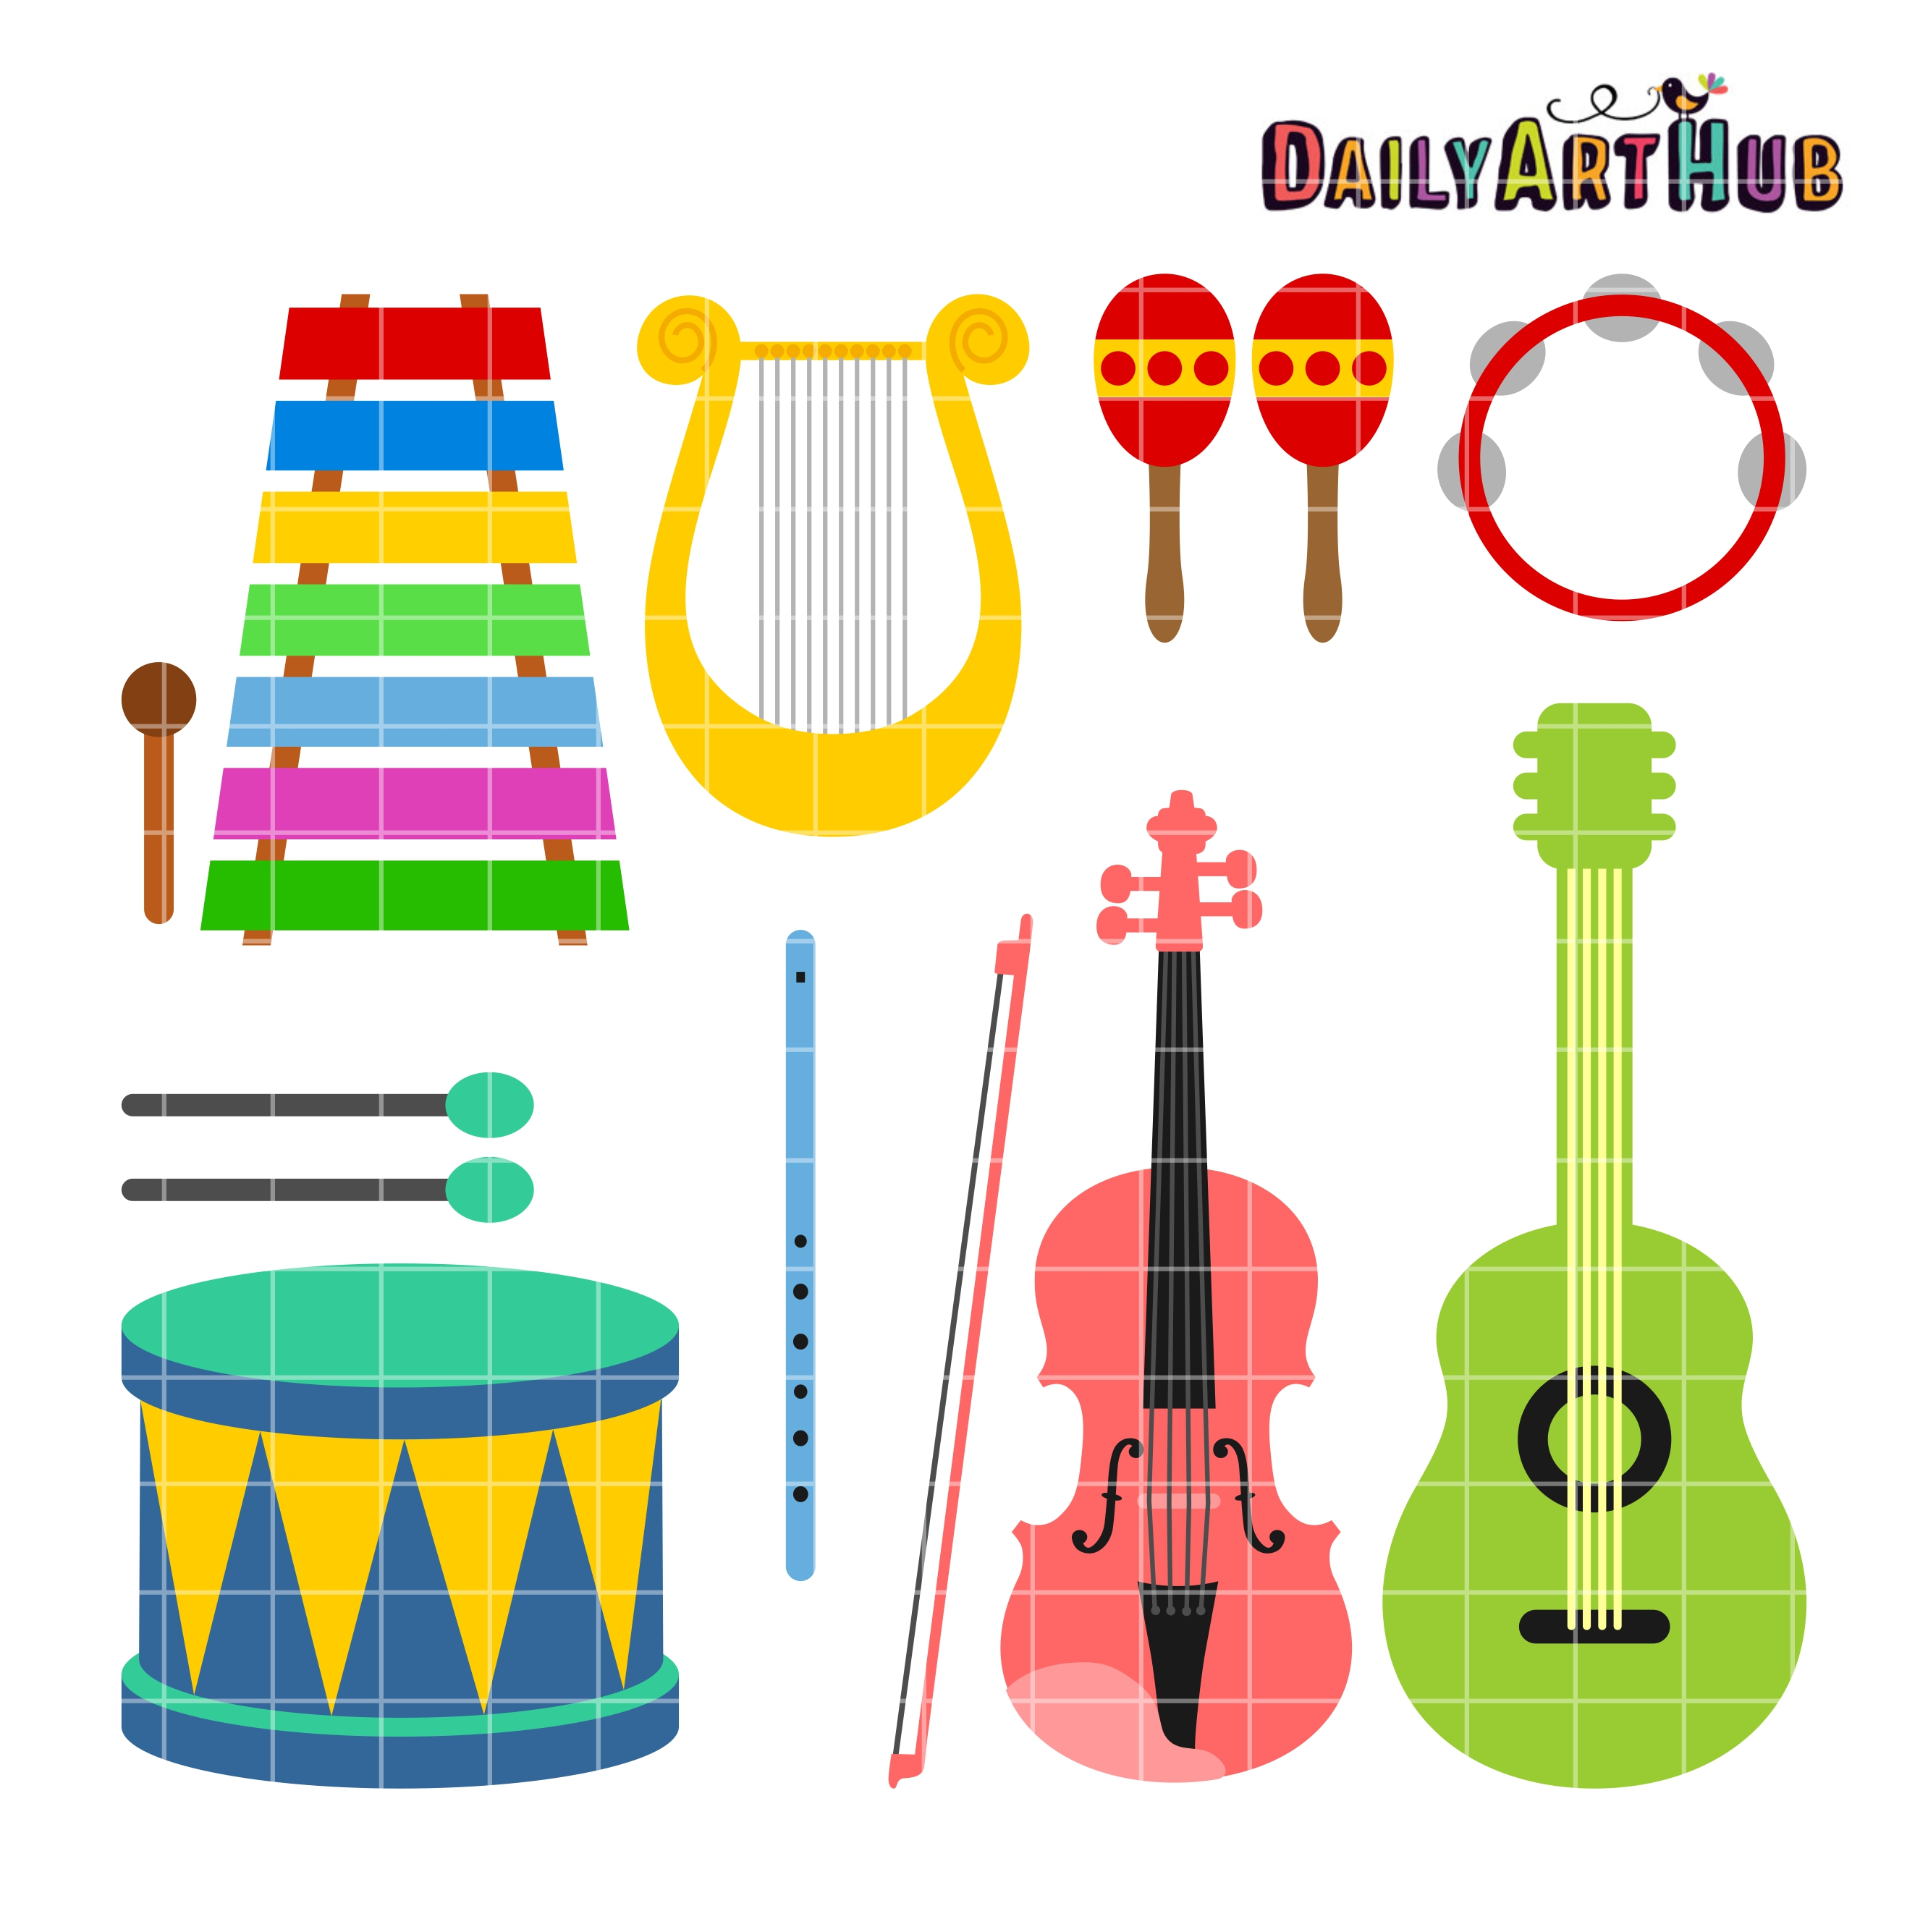 Musical Instruments Clipart Musical Inst-Musical Instruments Clipart Musical Instruments Clip Art 2664 x 2670-15